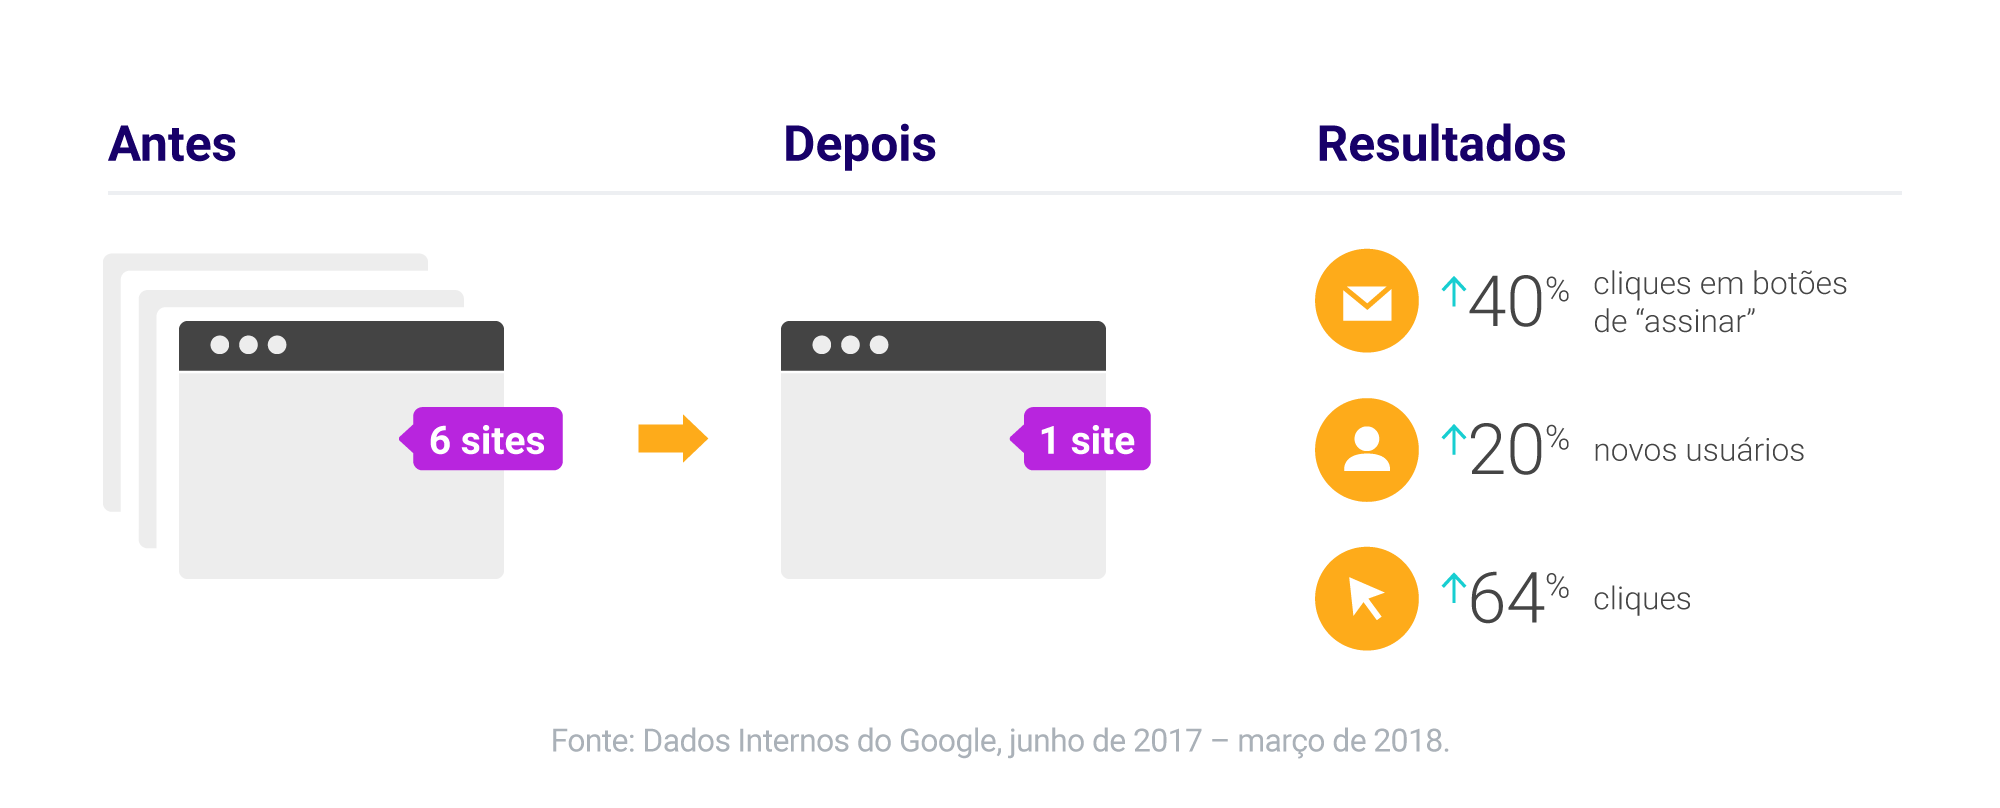 Por dentro do marketing do Google: 3 maneiras de pensar no SEO do seu site